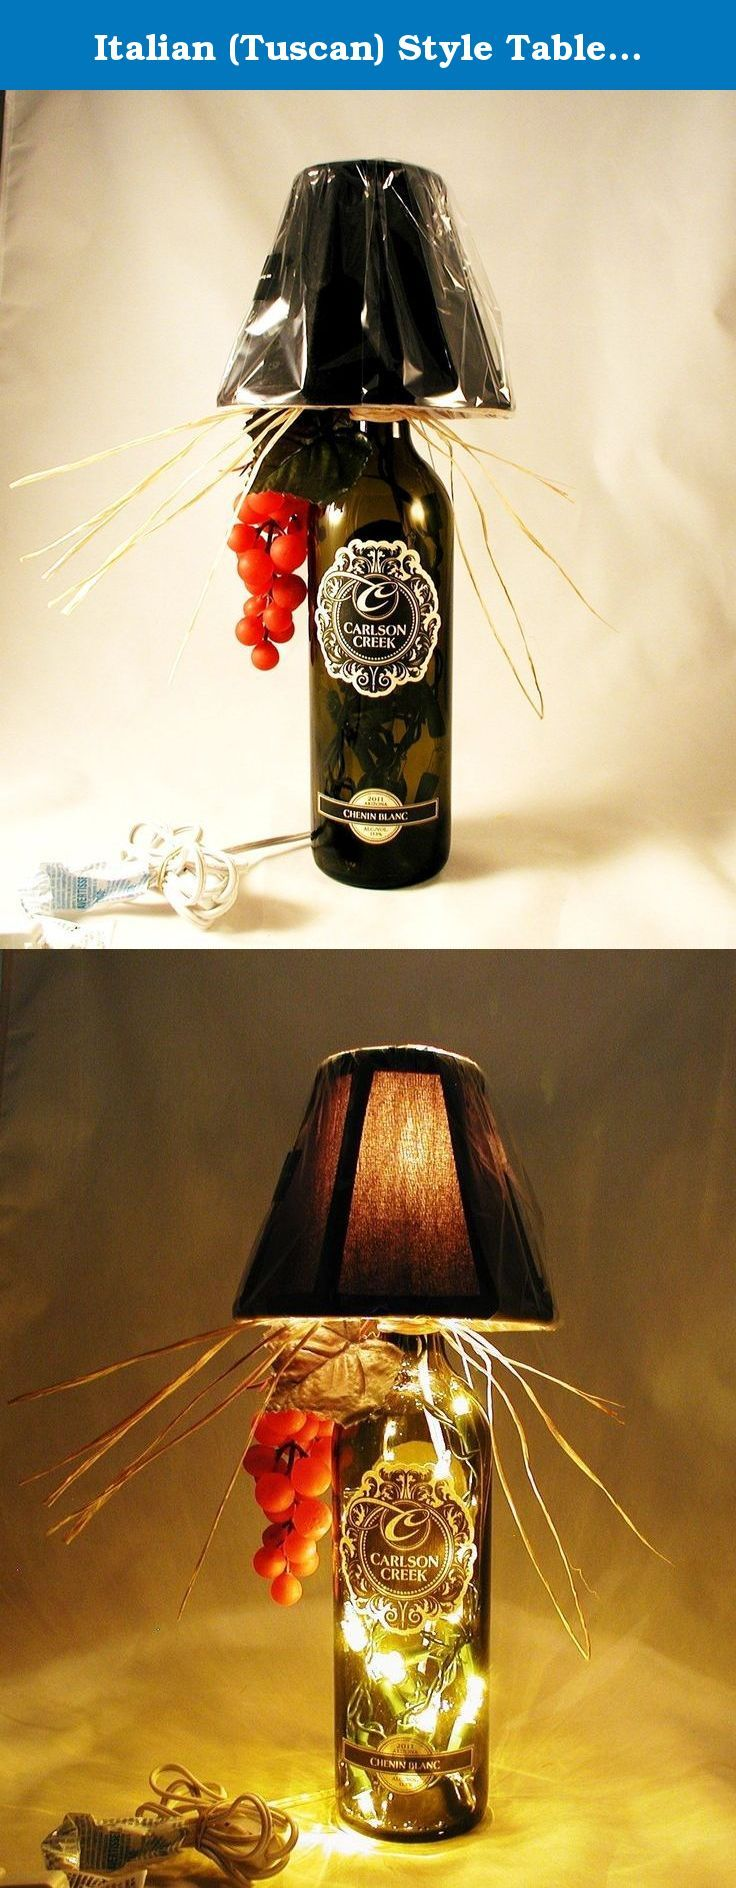 """Italian (Tuscan) Style Table Lamp Crafted From a Recycled Carlson Creek Chenin Blanc Wine Bottle.Shipping is included. Very attractive Italian style wine bottle table lamp made with a recycled Carlson Creek (An Arizona Winery) Chenin Blanc wine bottle. The bottle is light amber and the shade is black. Lamp is approximately 16"""" tall and approximately 13 """" wide (including the raffia). It has a nite light under the shade and mini lights inside the bottle. Comes with a switched cord for..."""